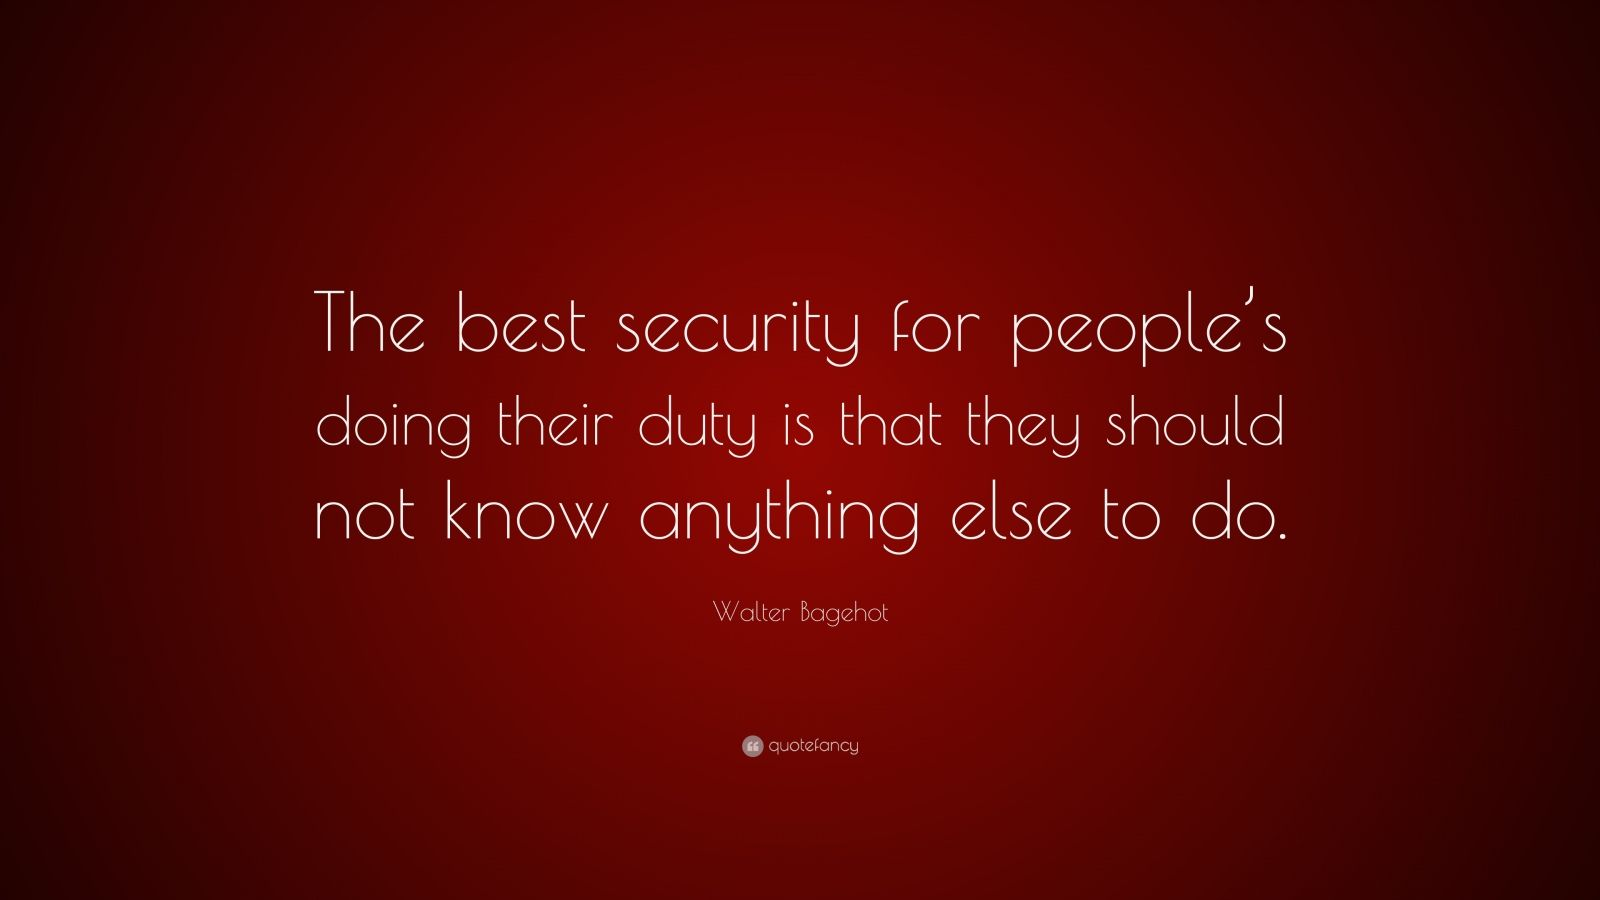 """Walter Bagehot Quote: """"The best security for people's doing their duty is that they should not know anything else to do."""""""